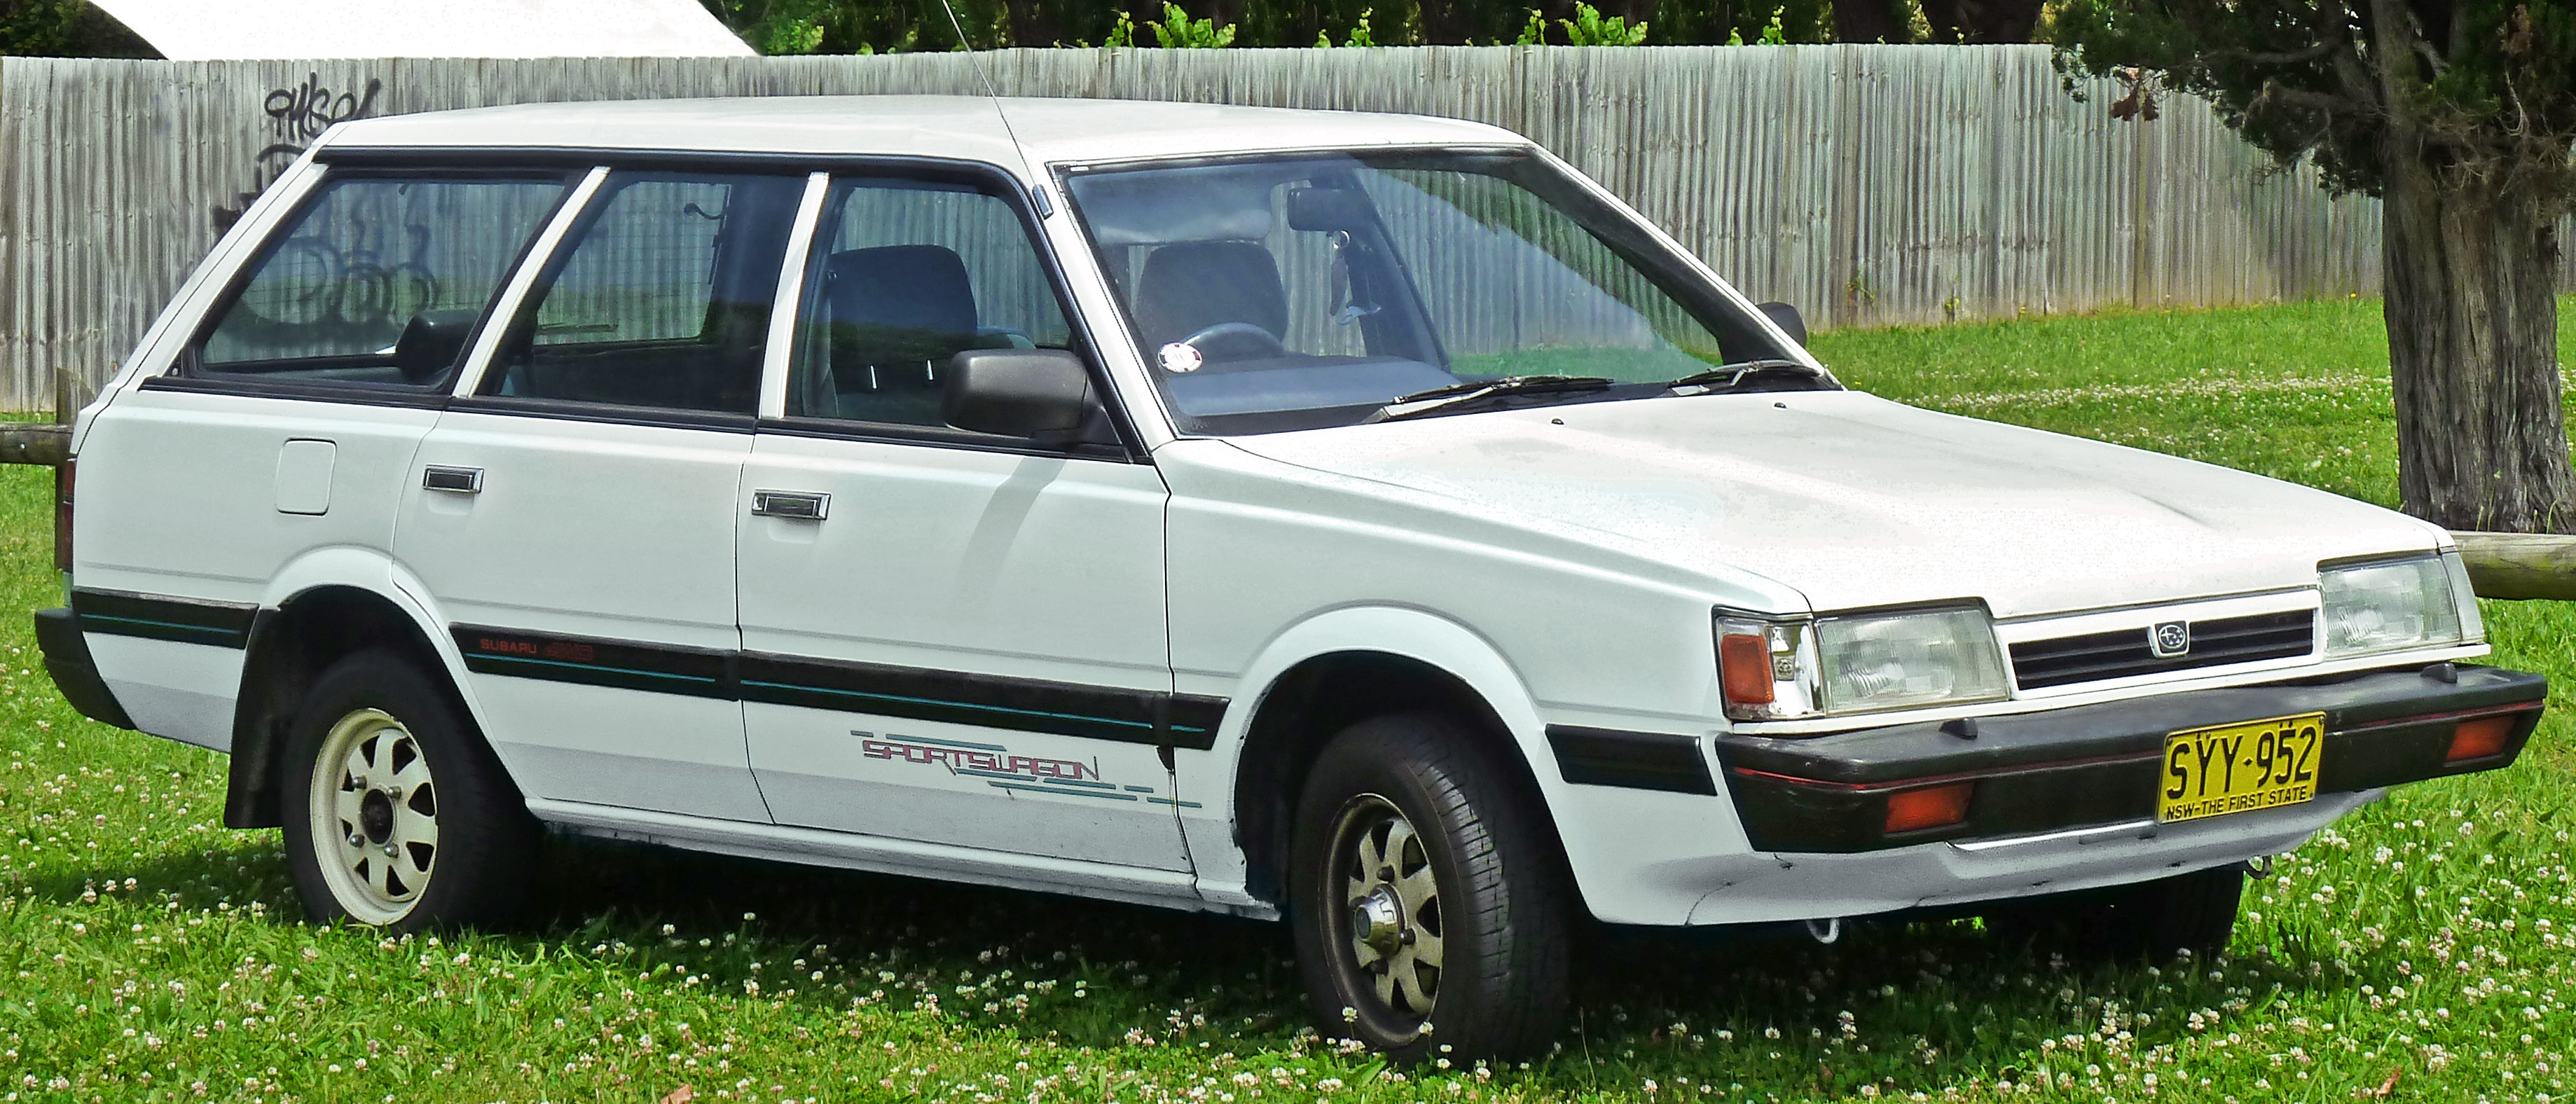 File:1994 Subaru L Series Deluxe Sportswagon station wagon (2011-10-23